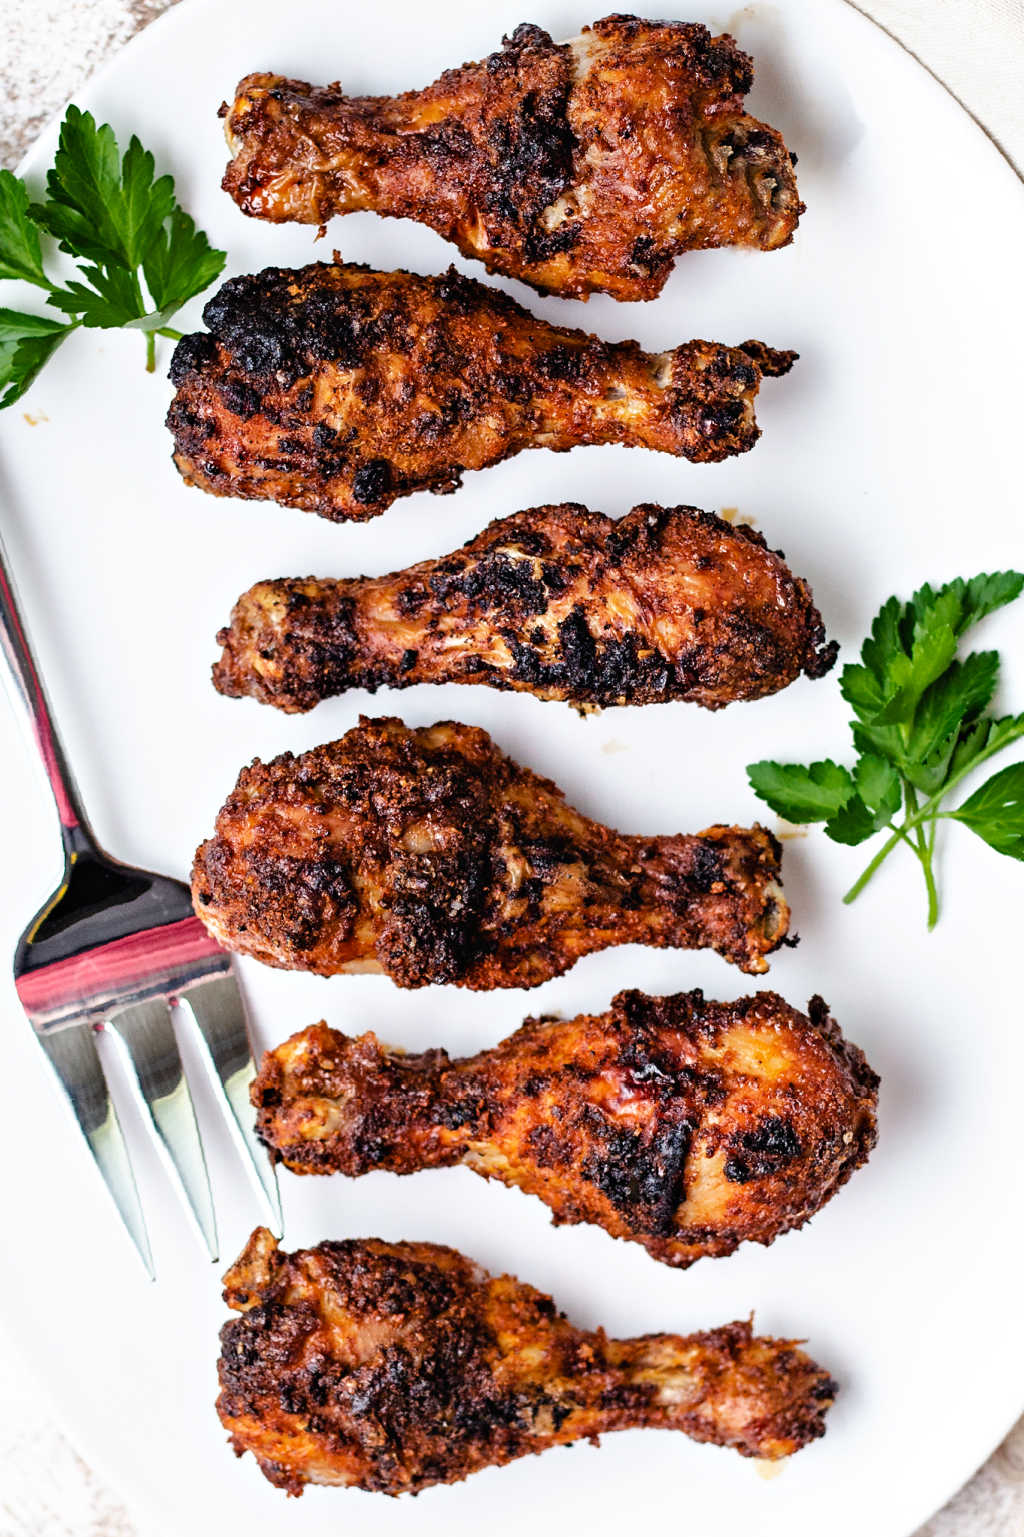 air fryer chicken legs on a white platter with parsley on a table.